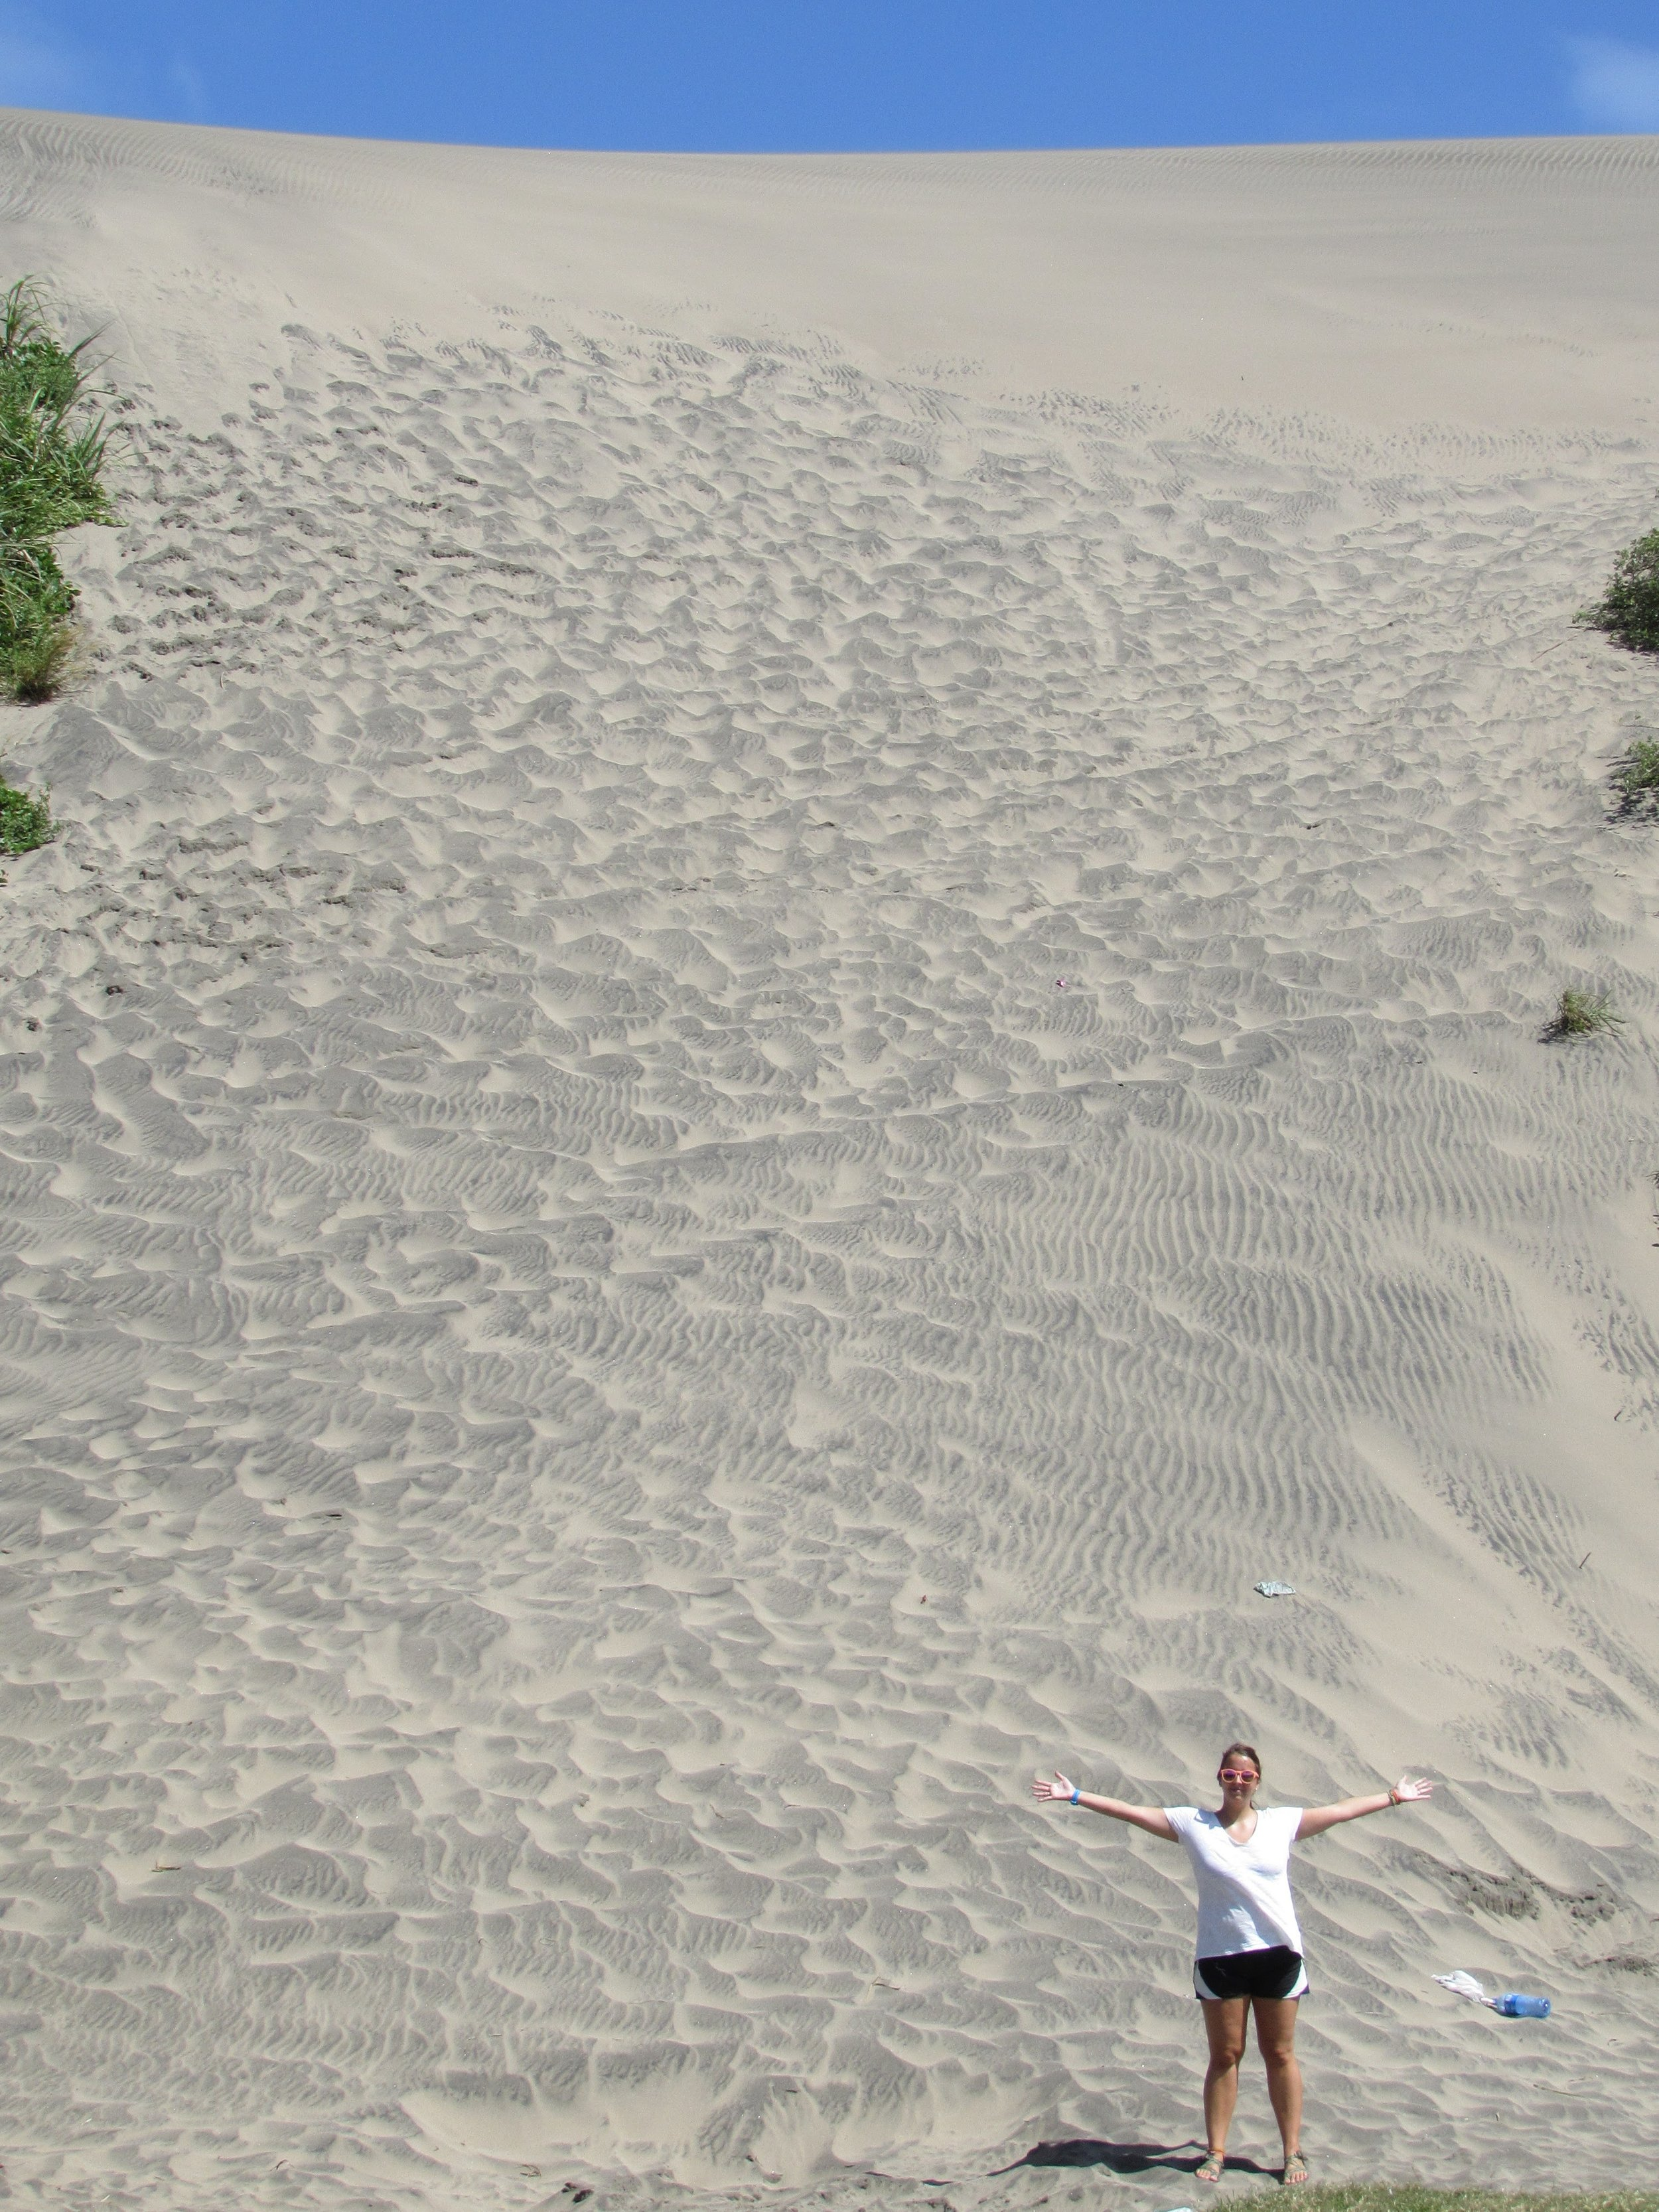 The dunes were so tall! We scaled this whole sandy ascent.